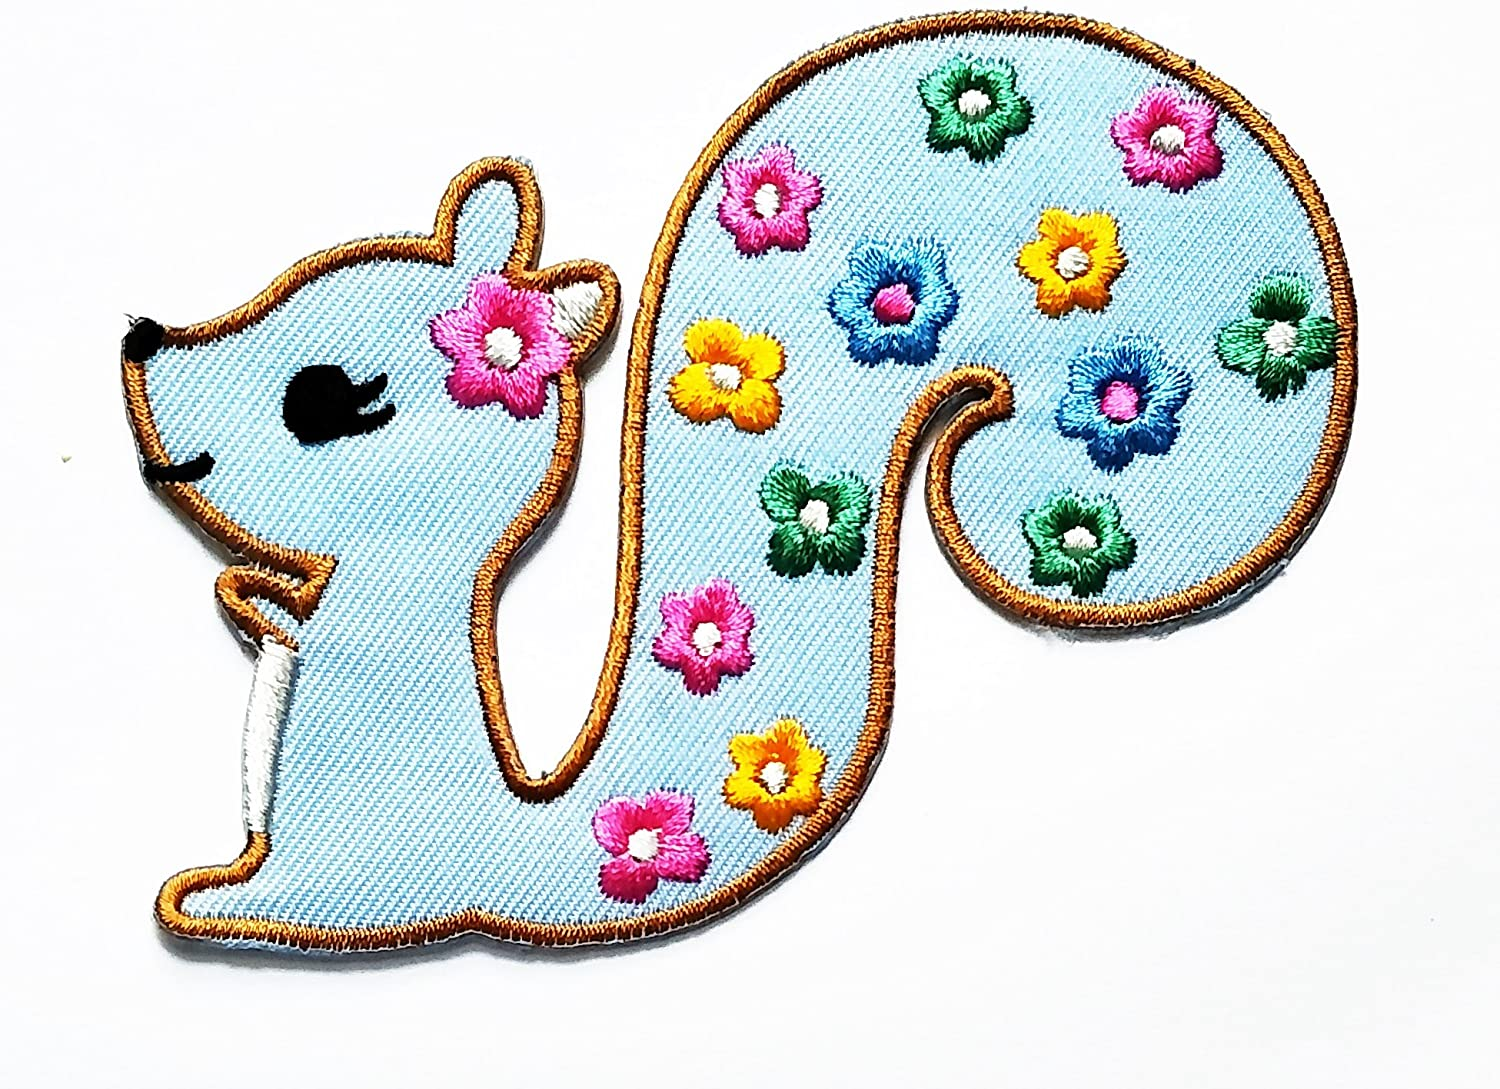 HHO Blue Little squirrel bright flower Patch Embroidered DIY Patches, Cute Applique Sew Iron on Kids Craft Patch for Bags Jackets Jeans Clothes